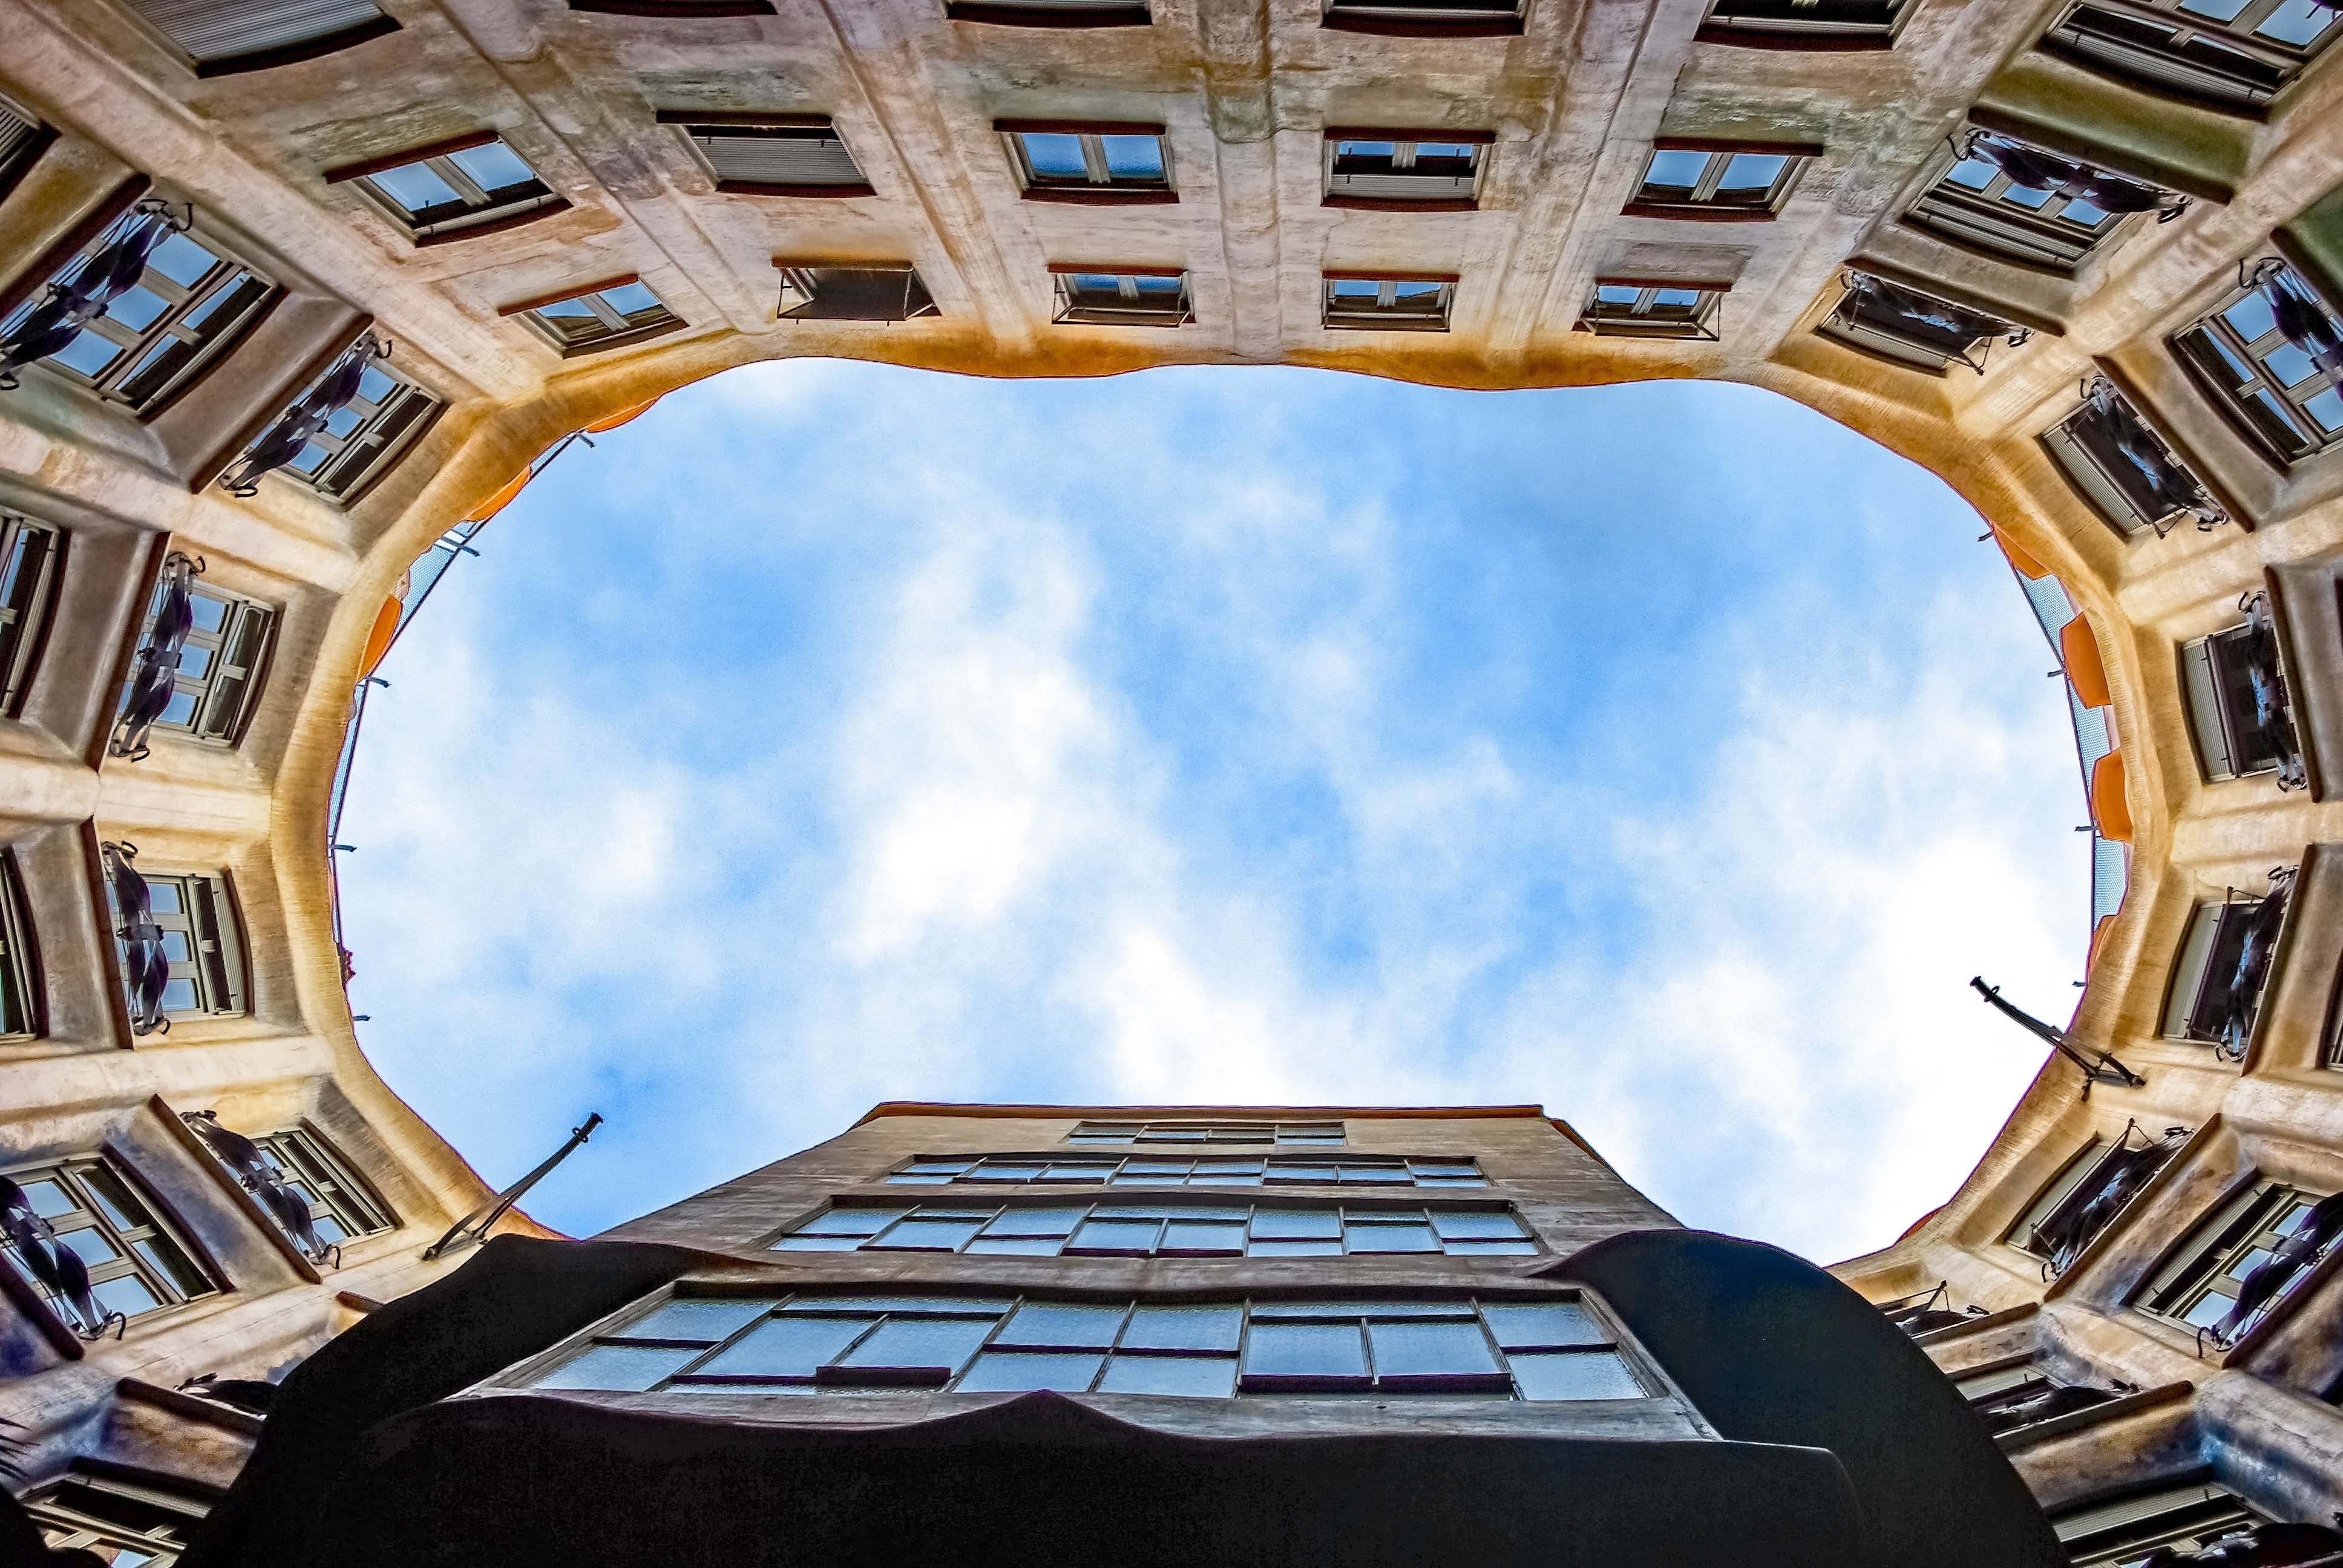 Low Angle View of Building Against Sky, Architecture, Barcelona, Building, City, HQ Photo